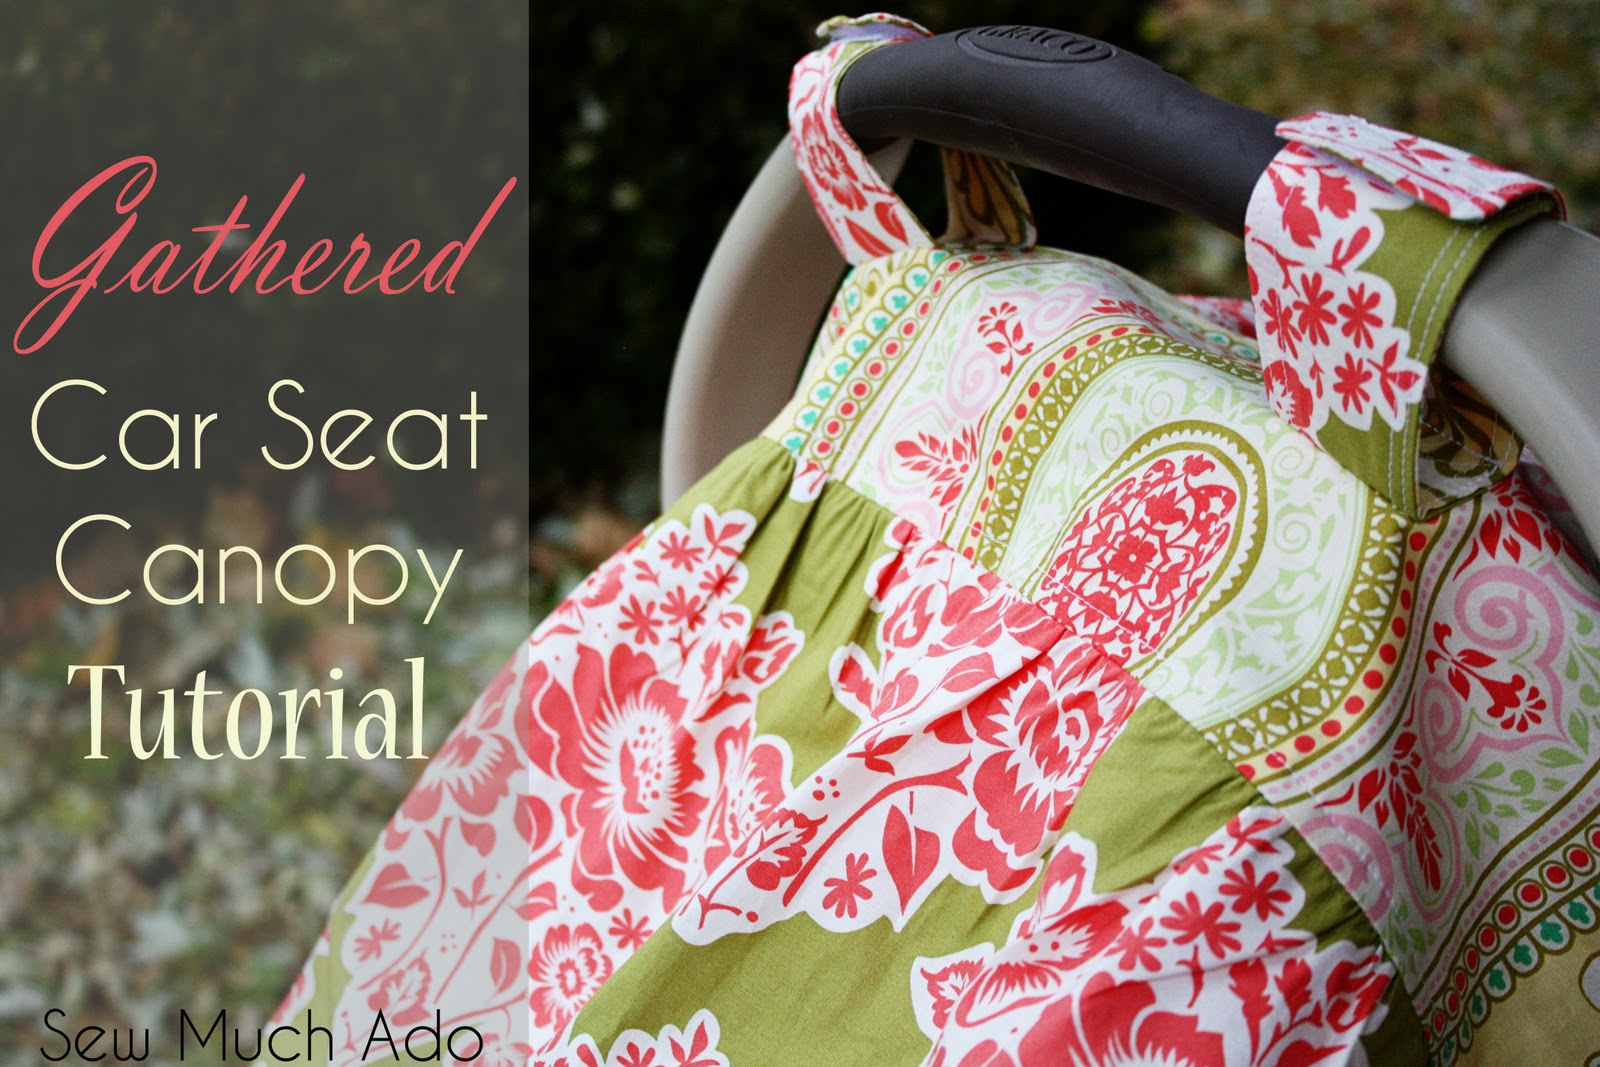 & Gathered Car Seat Canopy Tutorial - Sew Much Ado